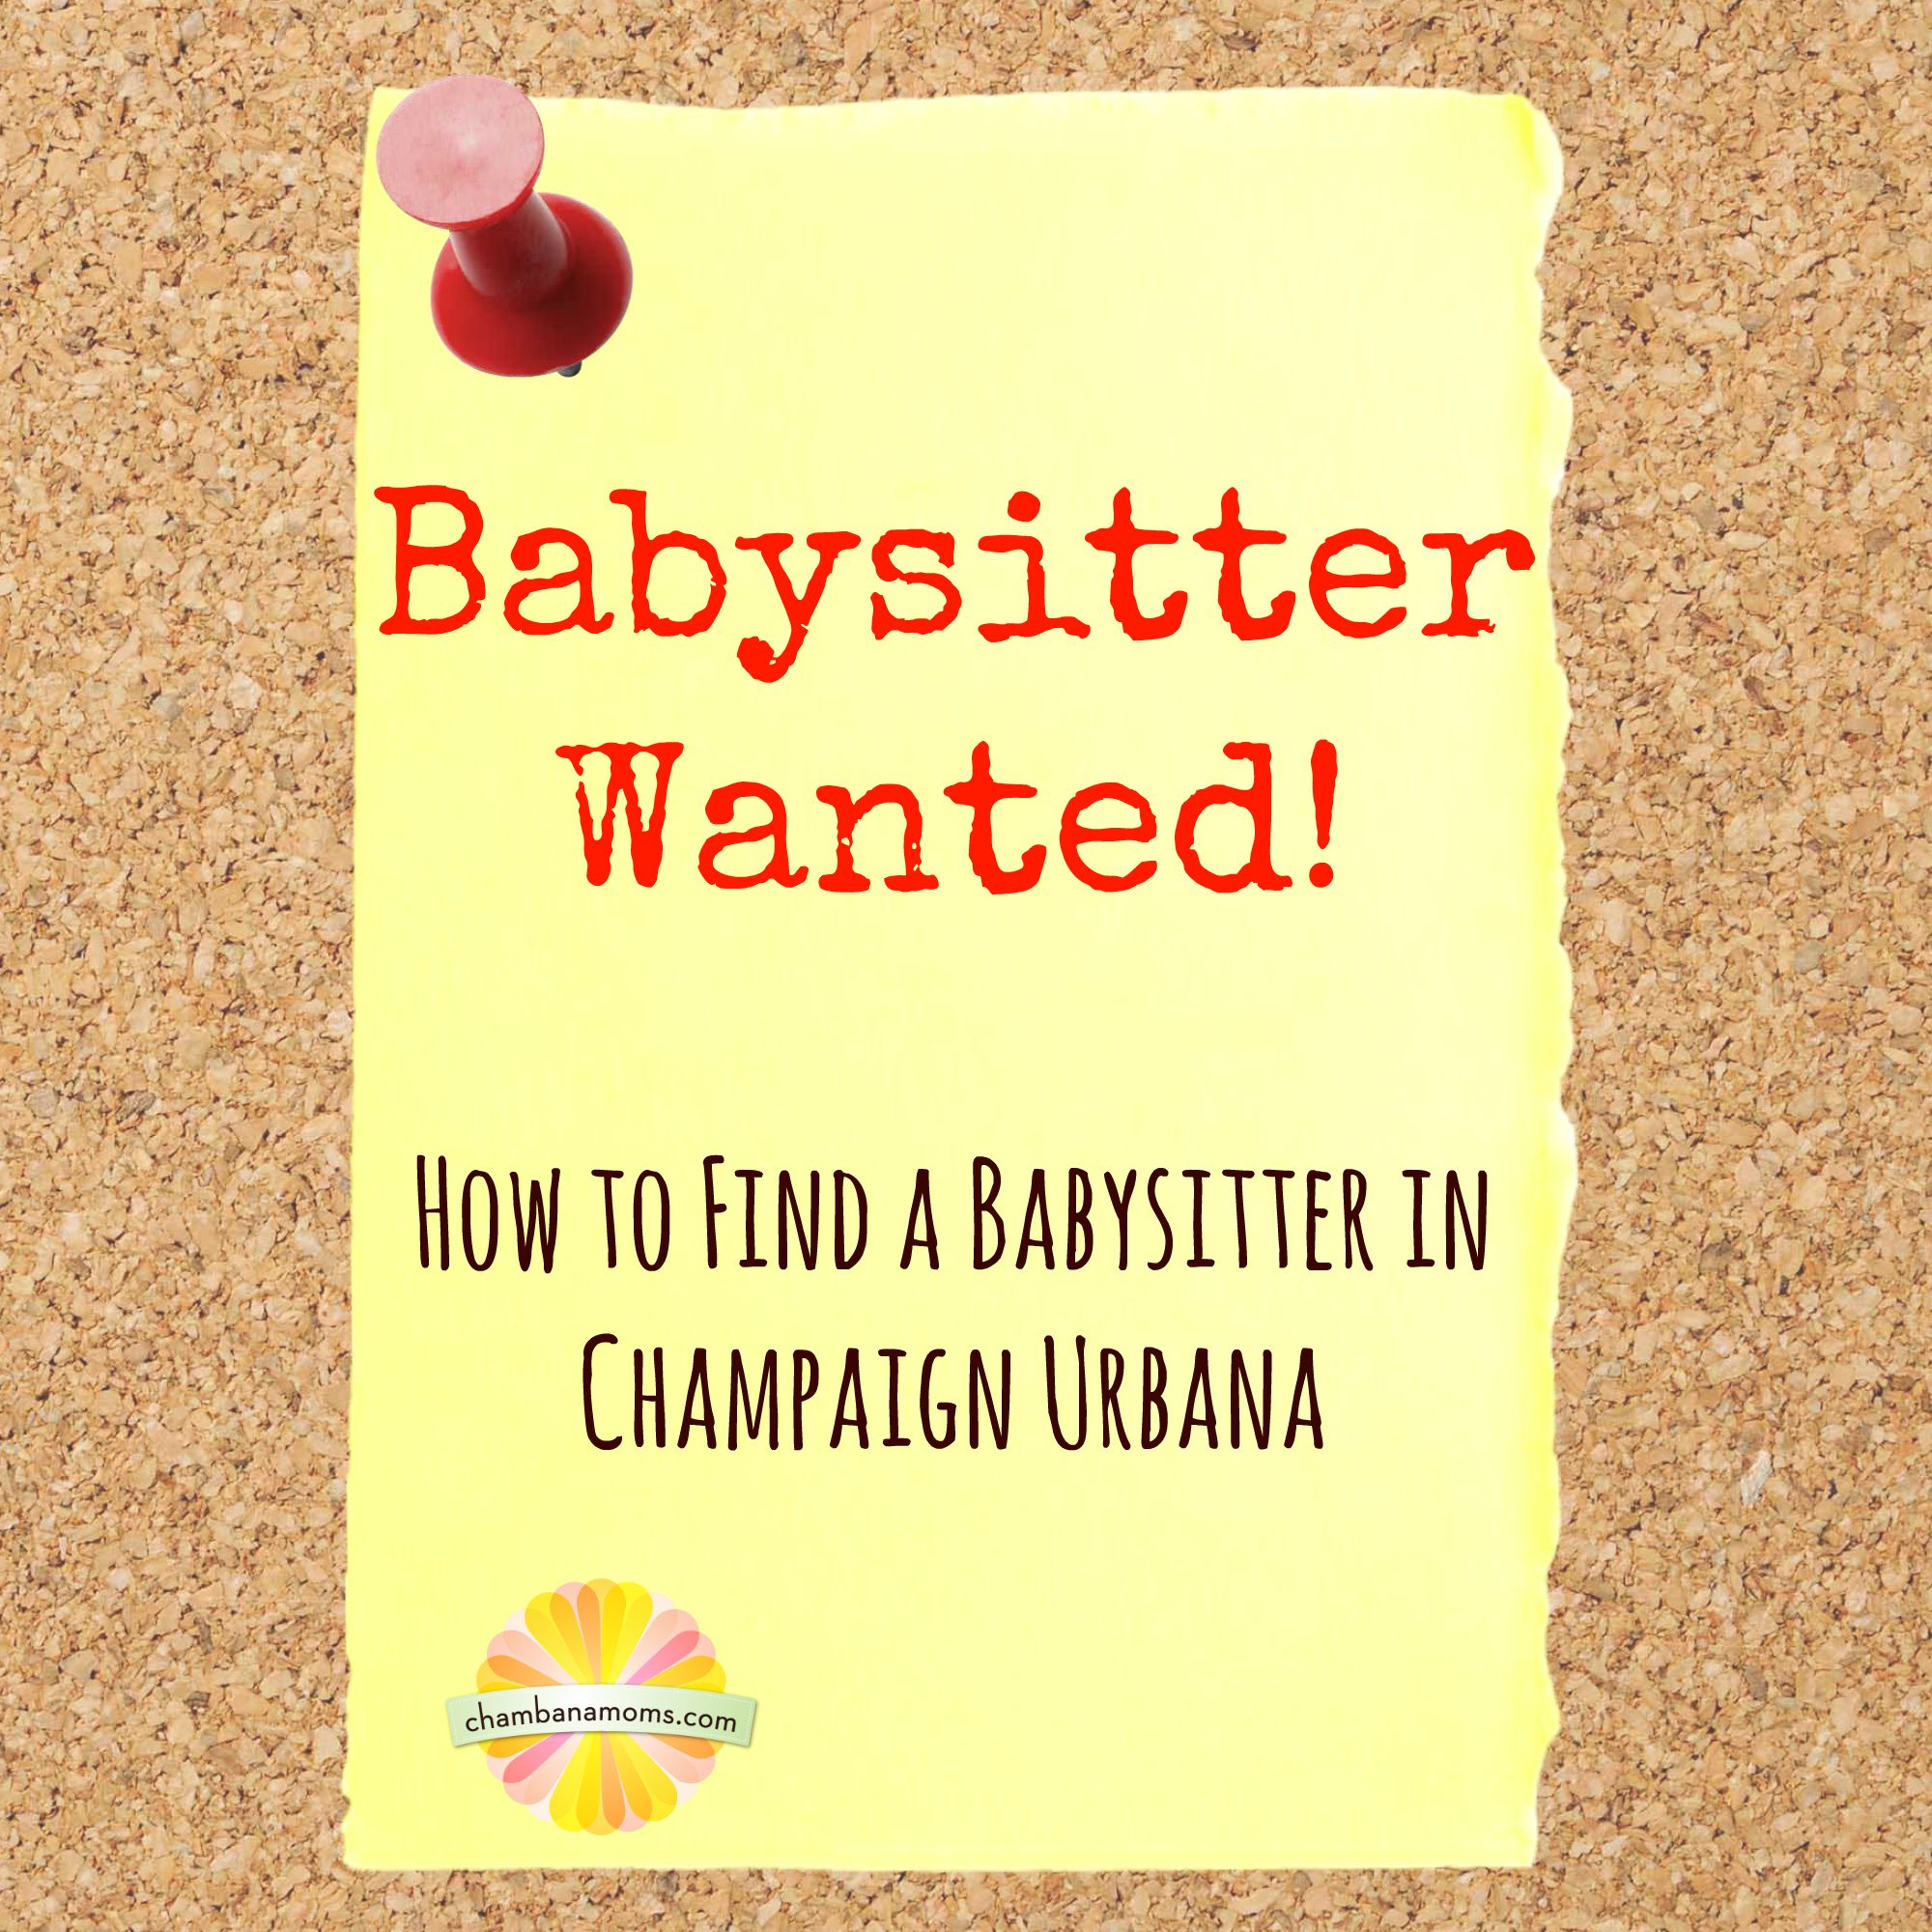 How To Find A Babysitter In Champaign Urbana